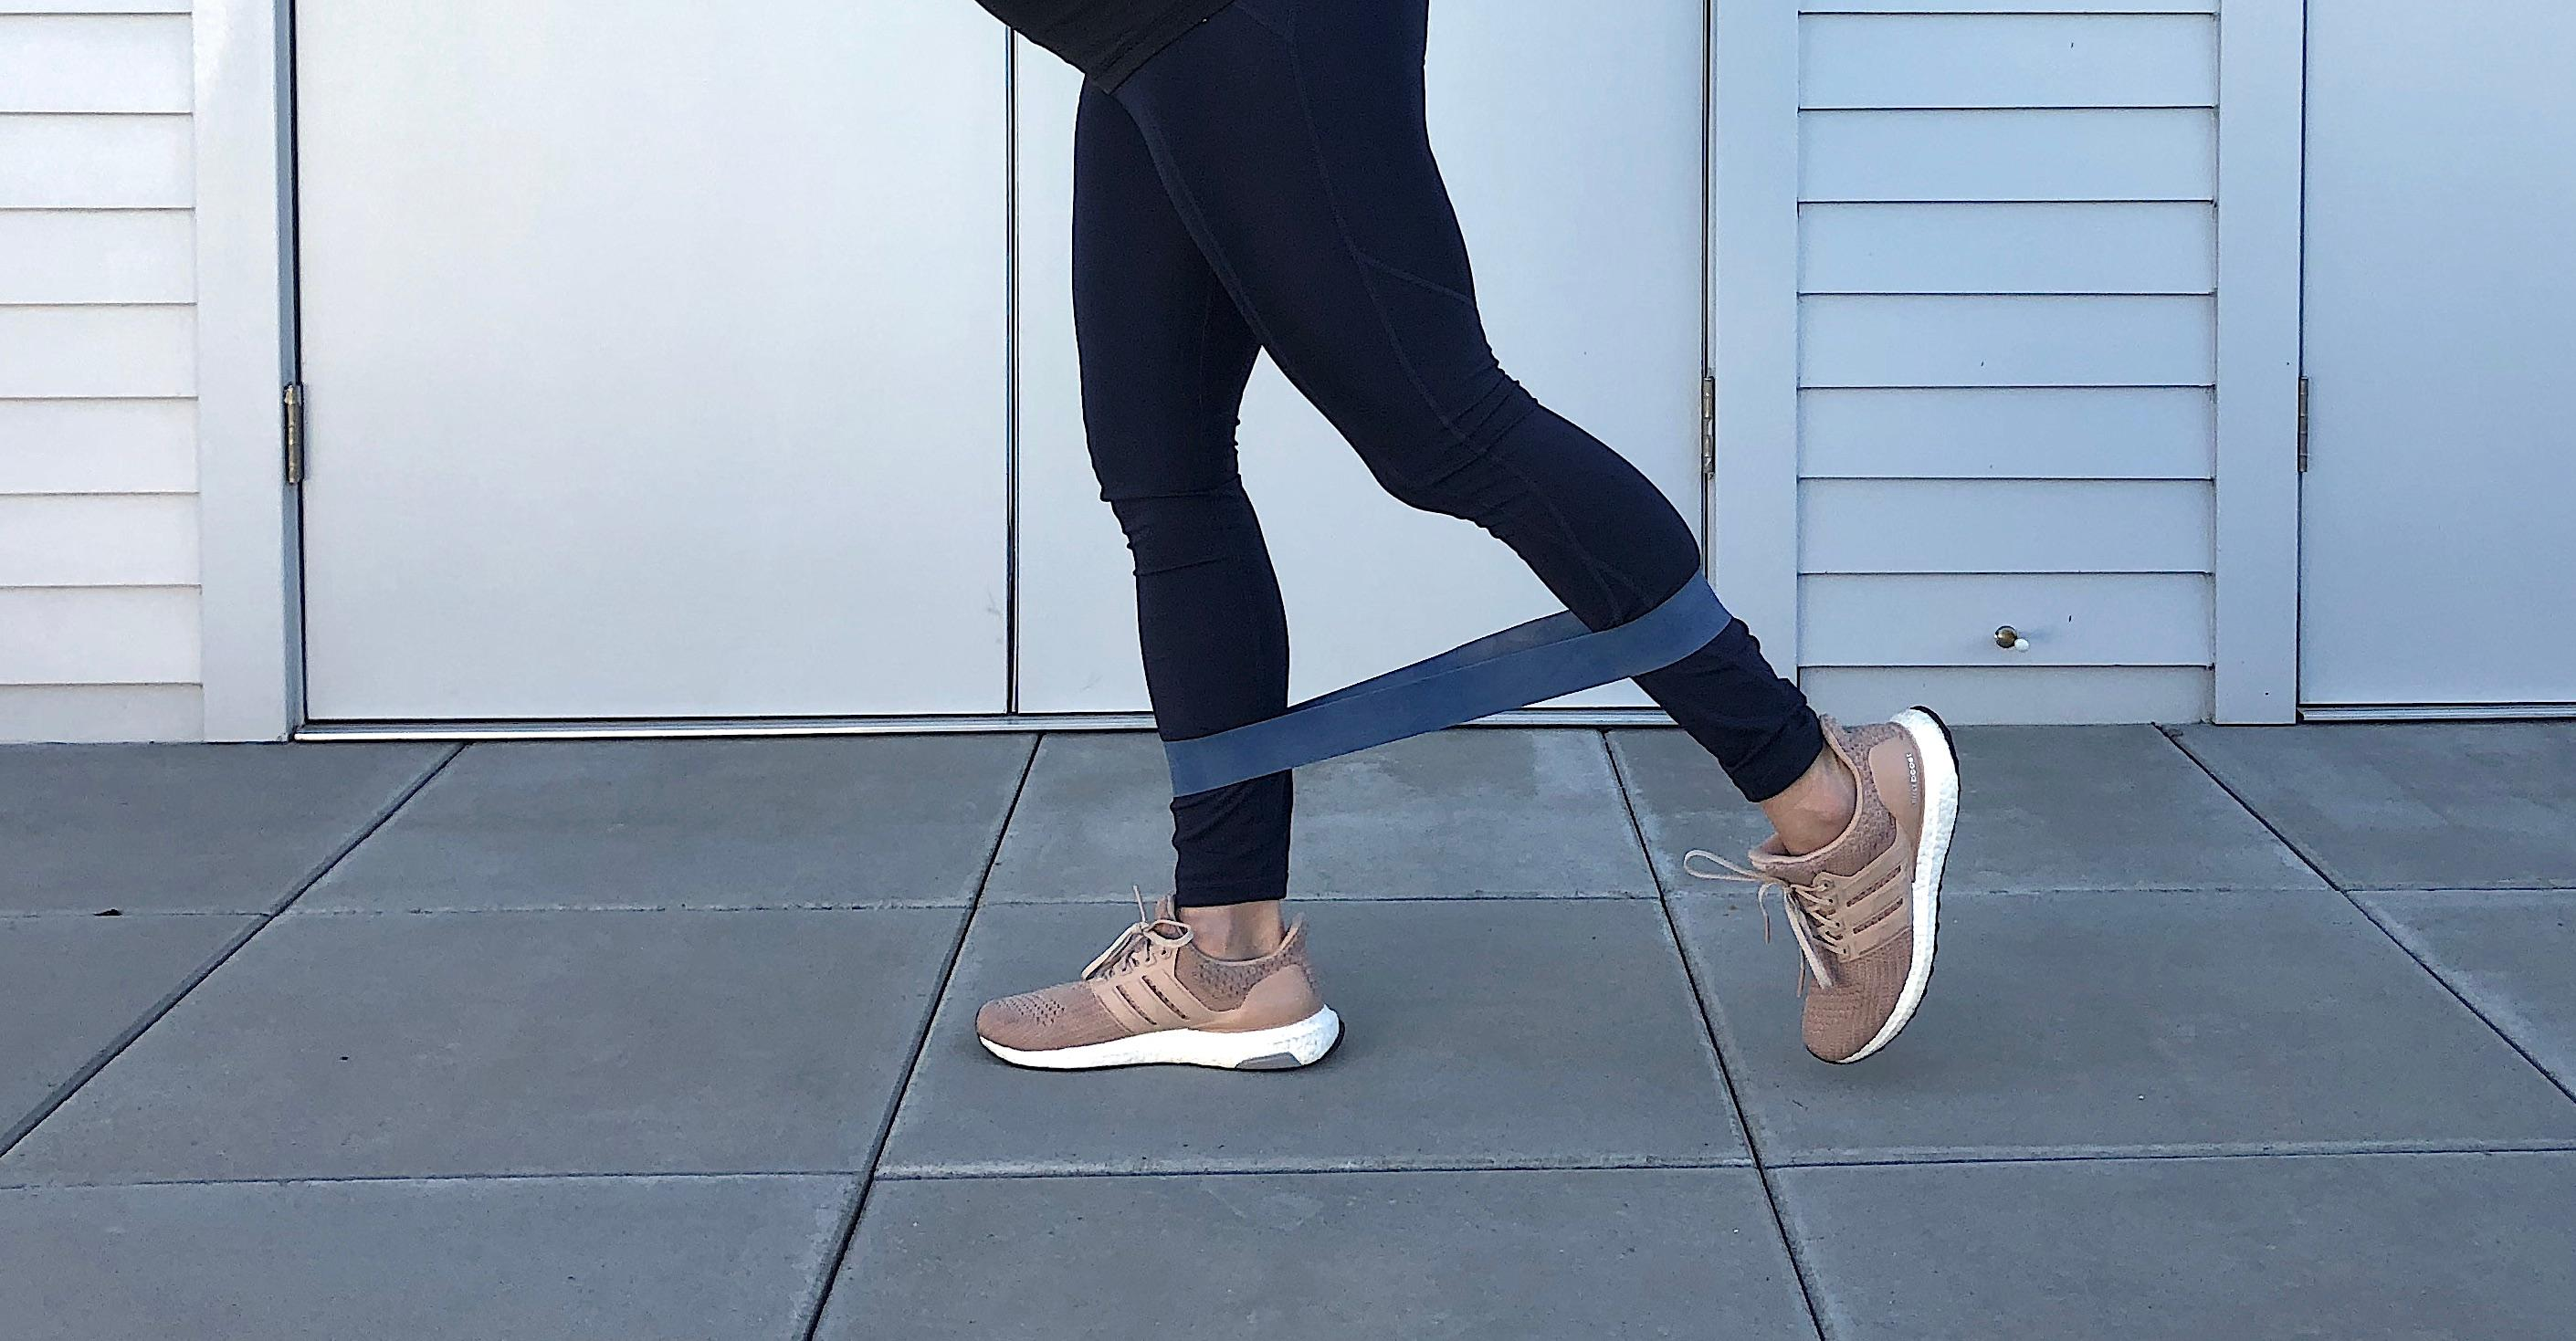 Place the band above your ankles. Stand with feet about hip width apart and have your hands on your hips or place gently against a wall for help balancing. Keep your legs mostly straight with a micro bend at the knee. Press one leg back and feel the tension in the band and the work in your glutes. (Image: Amanda Shapin)